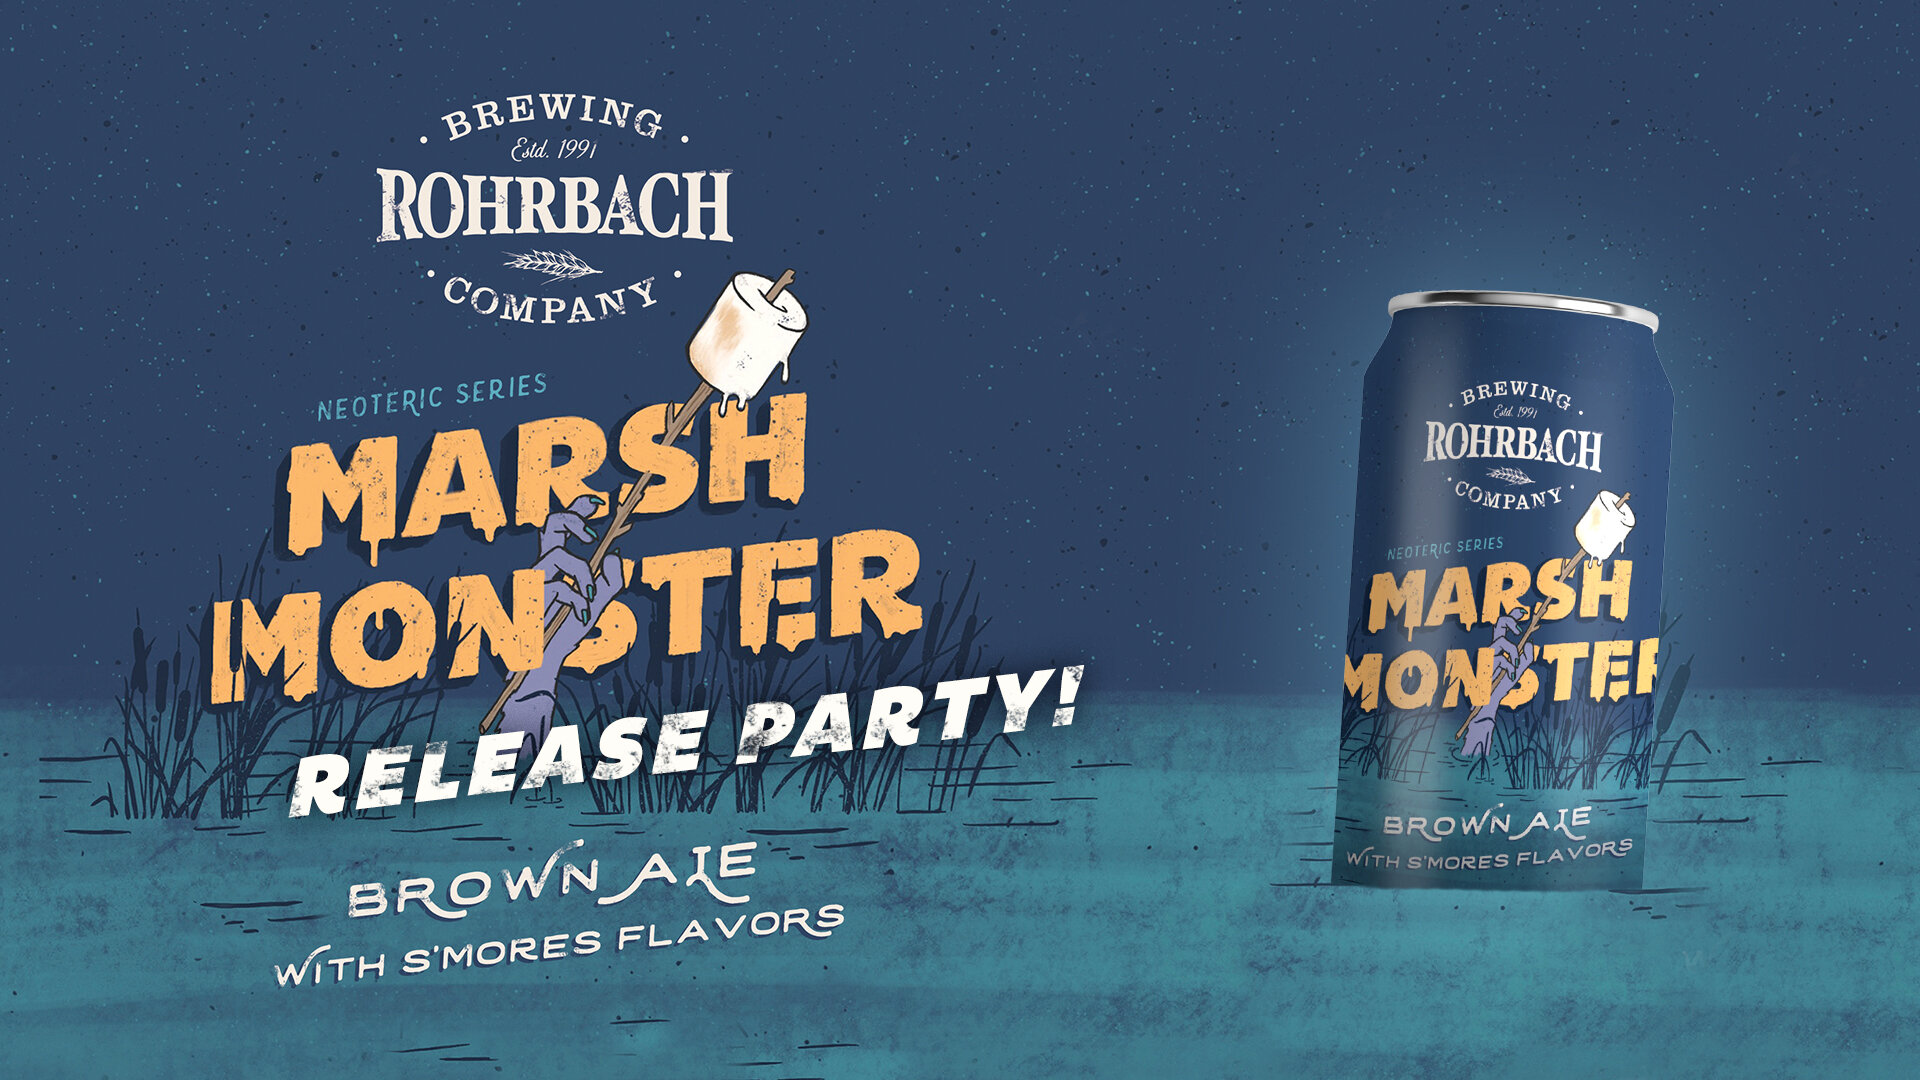 Marsh Monster Release Party